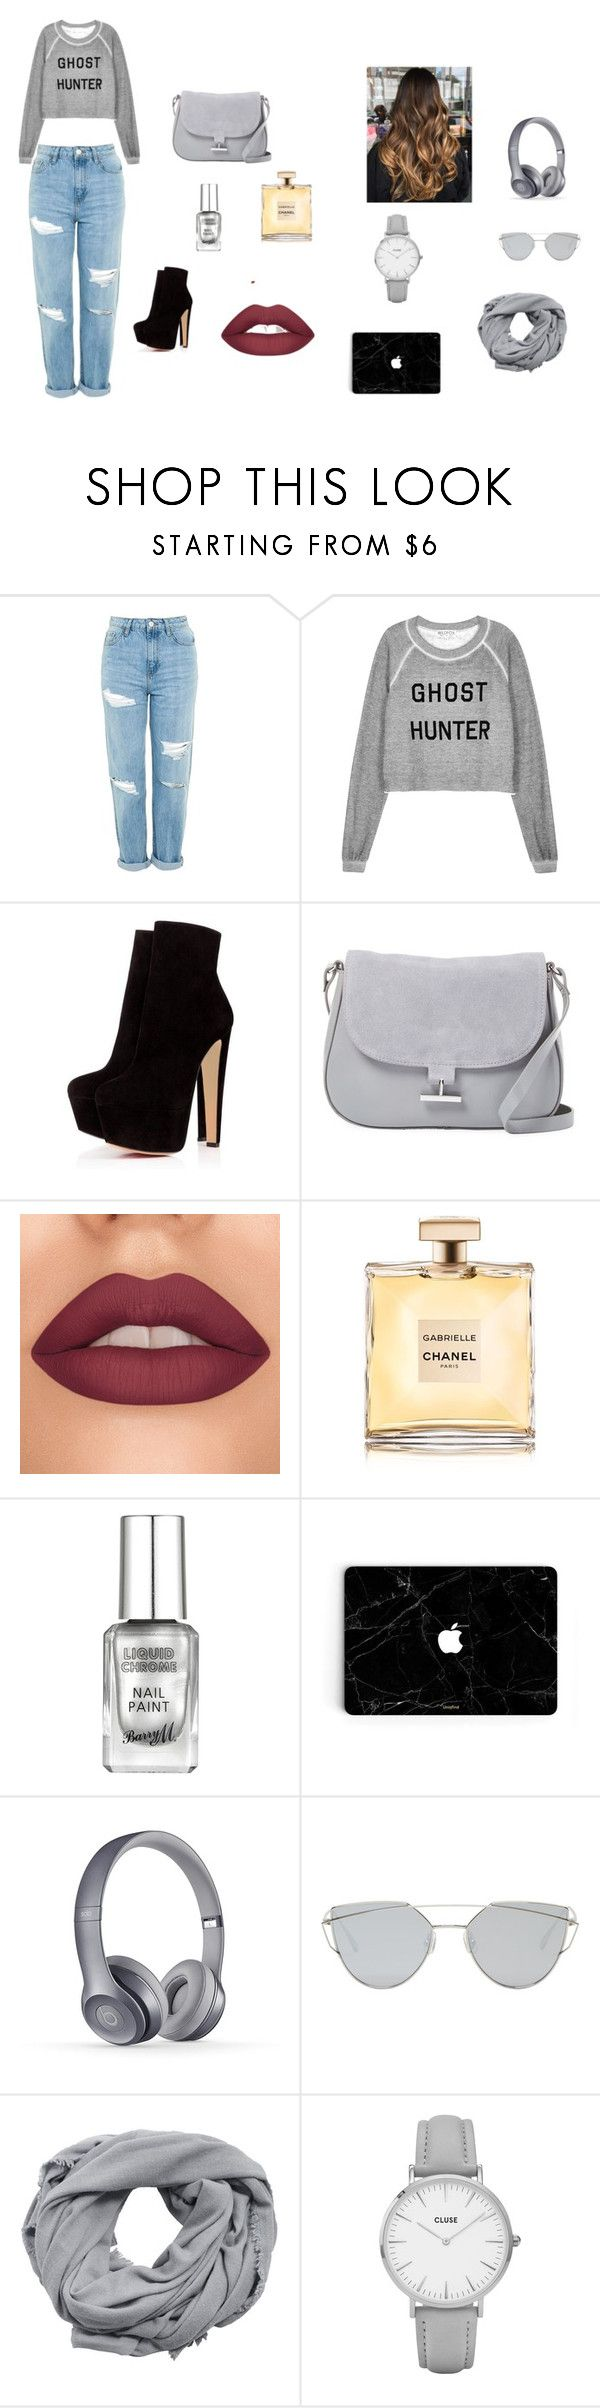 """:*"" by enasoftic ❤ liked on Polyvore featuring Topshop, Wildfox, Halston Heritage, Gentle Monster, MANGO and CLUSE"